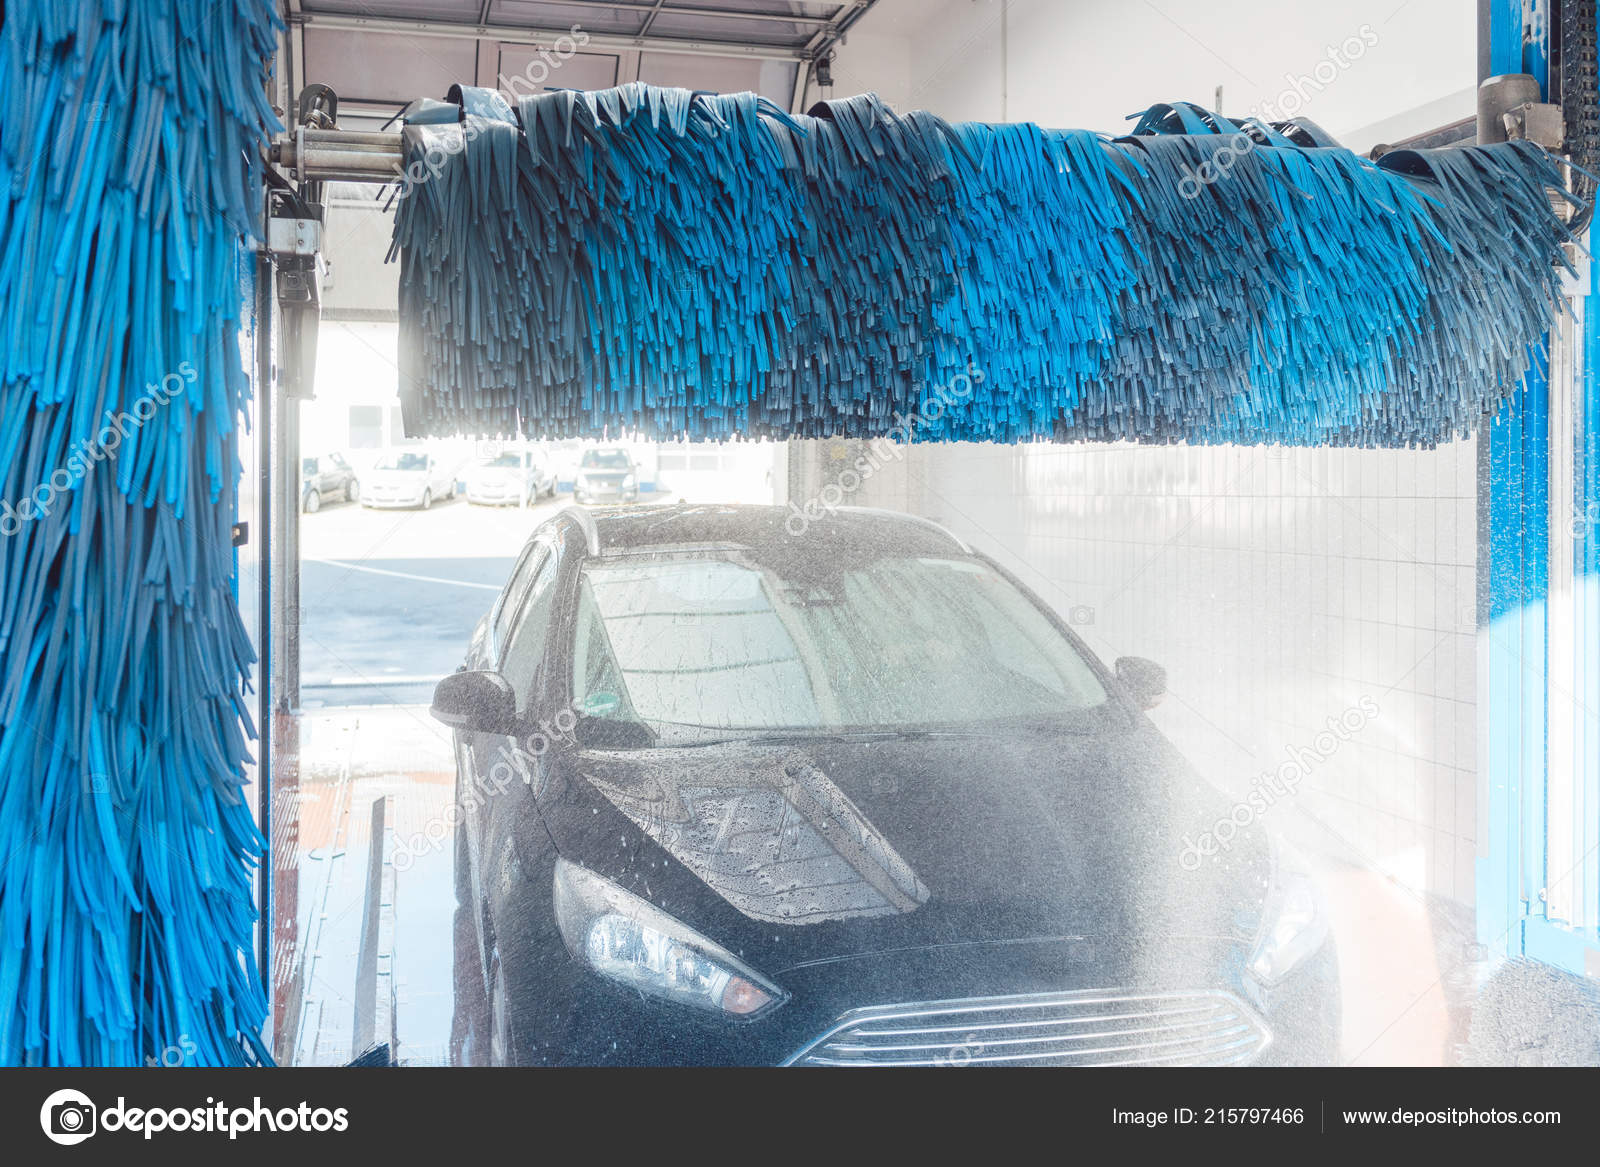 Commercial car wash brush sealing wood floors